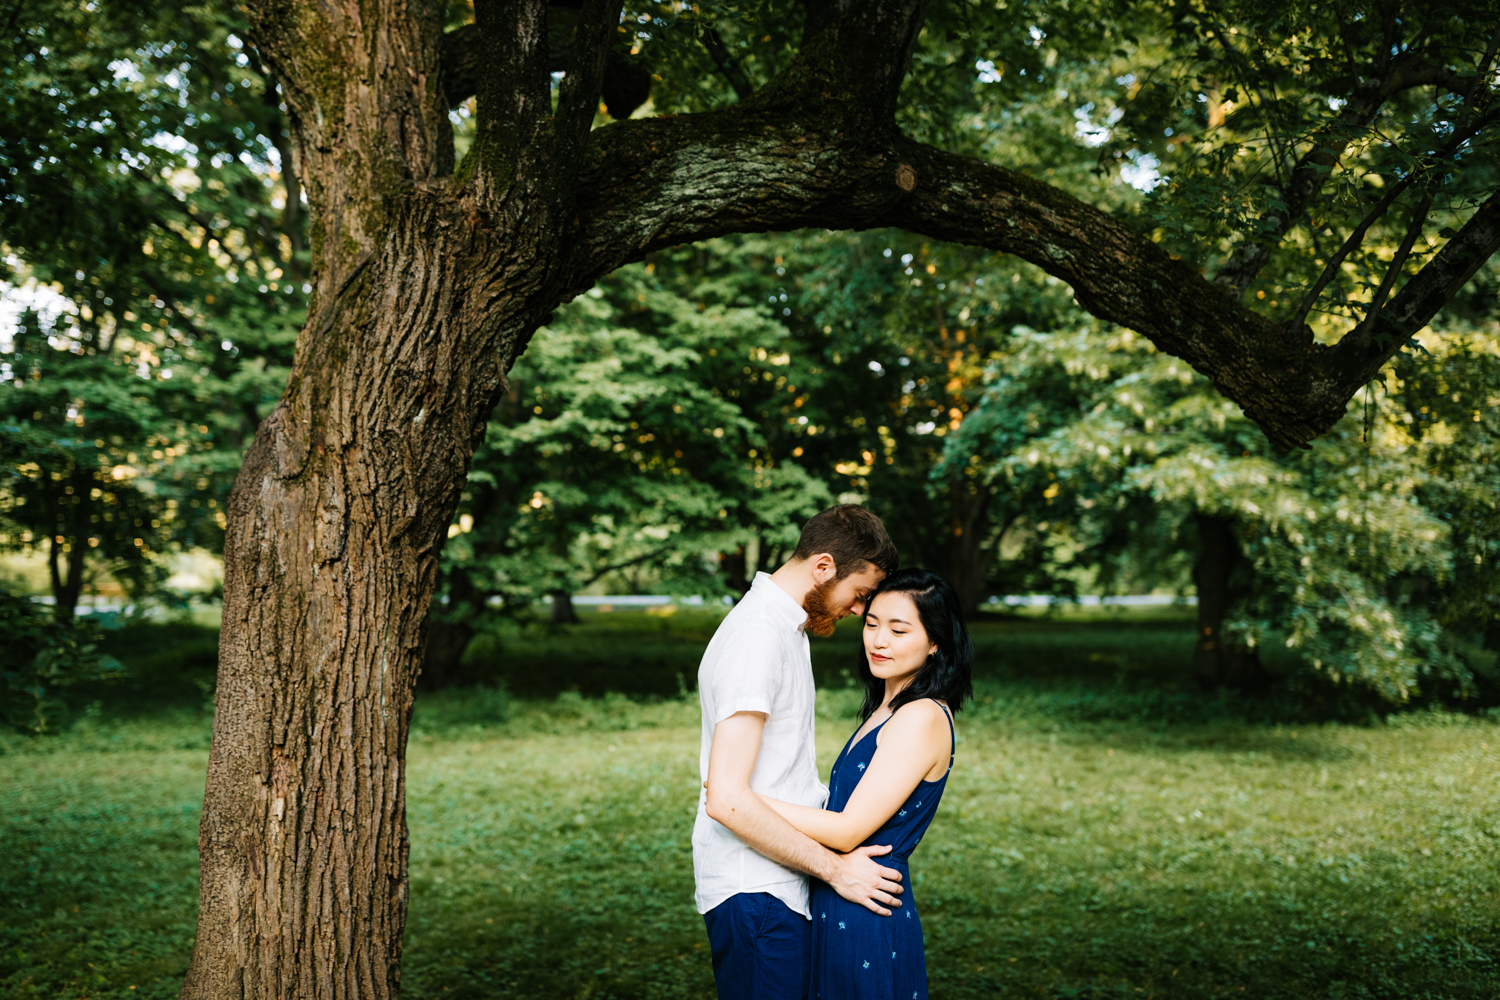 boston-massachusetts-fun-engagement-photographer-arnold-arboretum-harvard-natural-adventurous-andrea-van-orsouw-photography.jpg